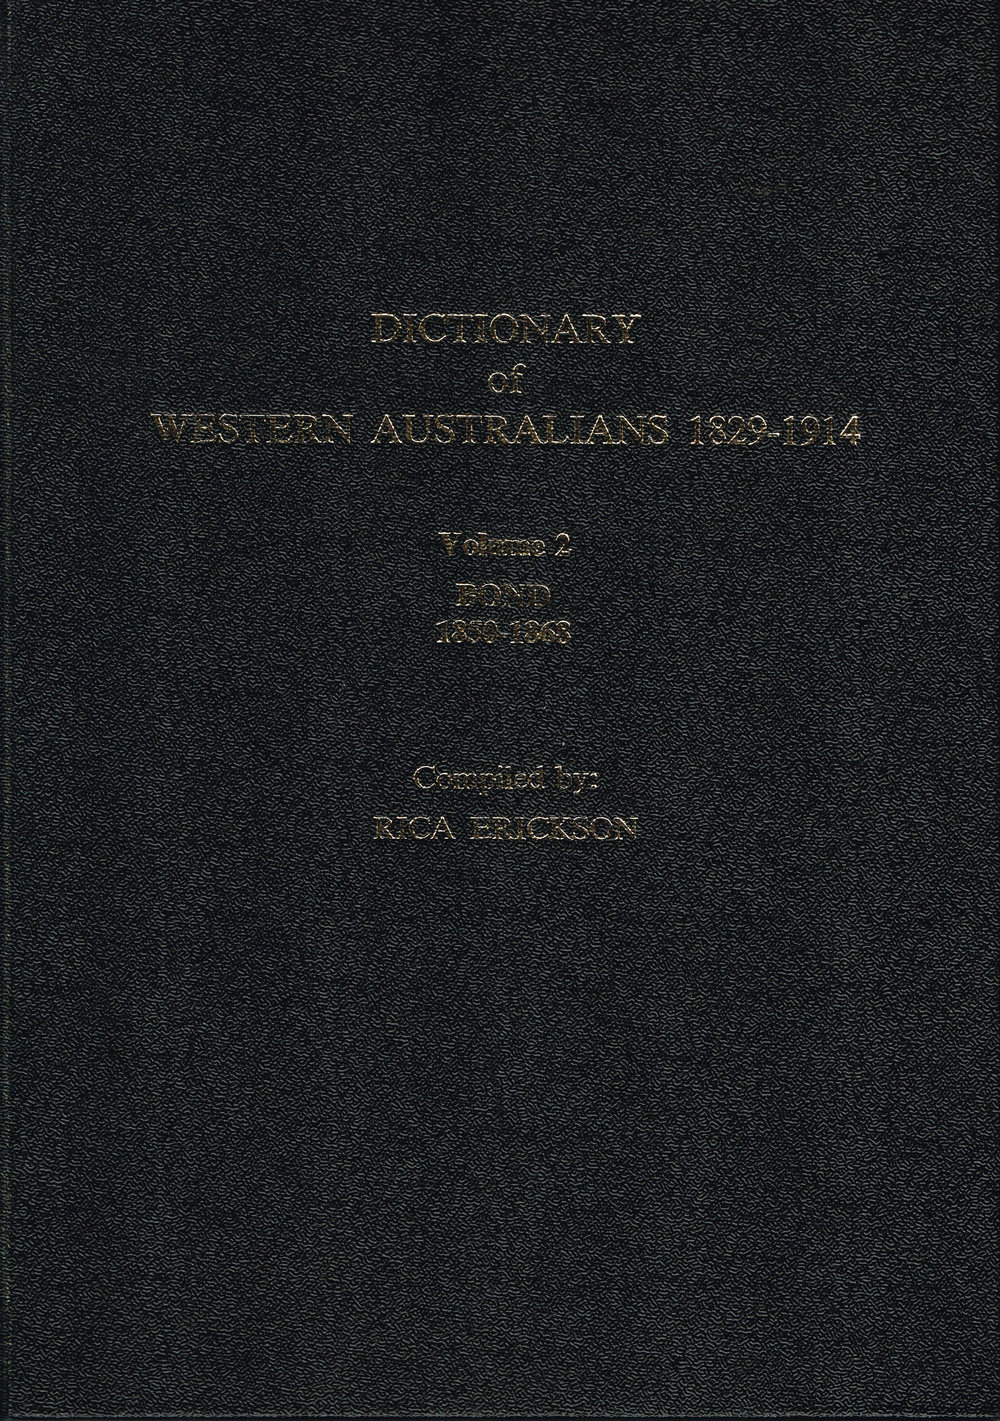 Dictionary of Western Australians 1829-1914 : Vol 2 bond 1950-1868  Complied by Rica Erickson